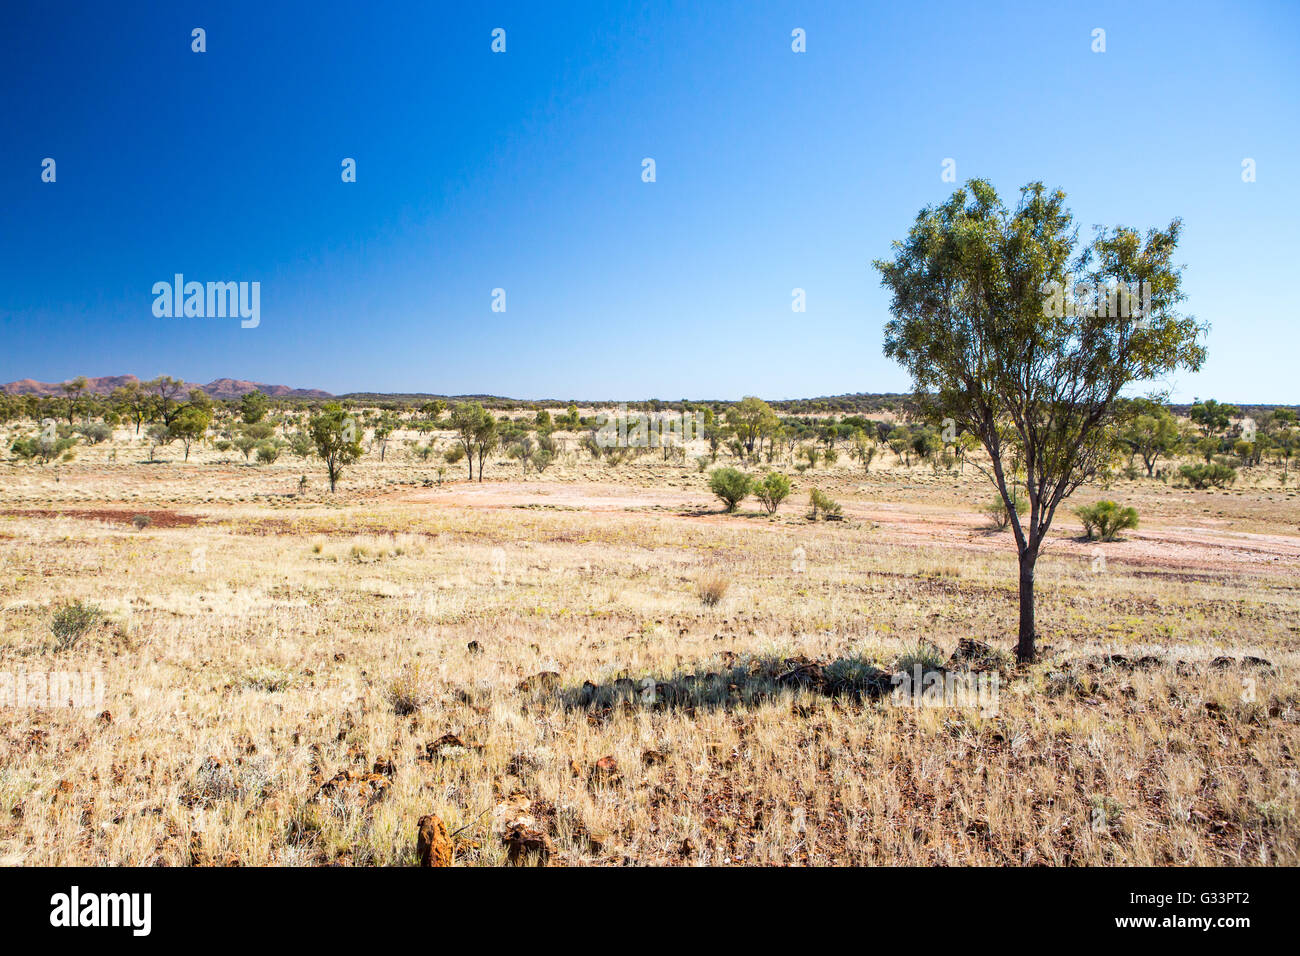 Gem fields near Gemtree in the Northern Territory, Australia - Stock Image